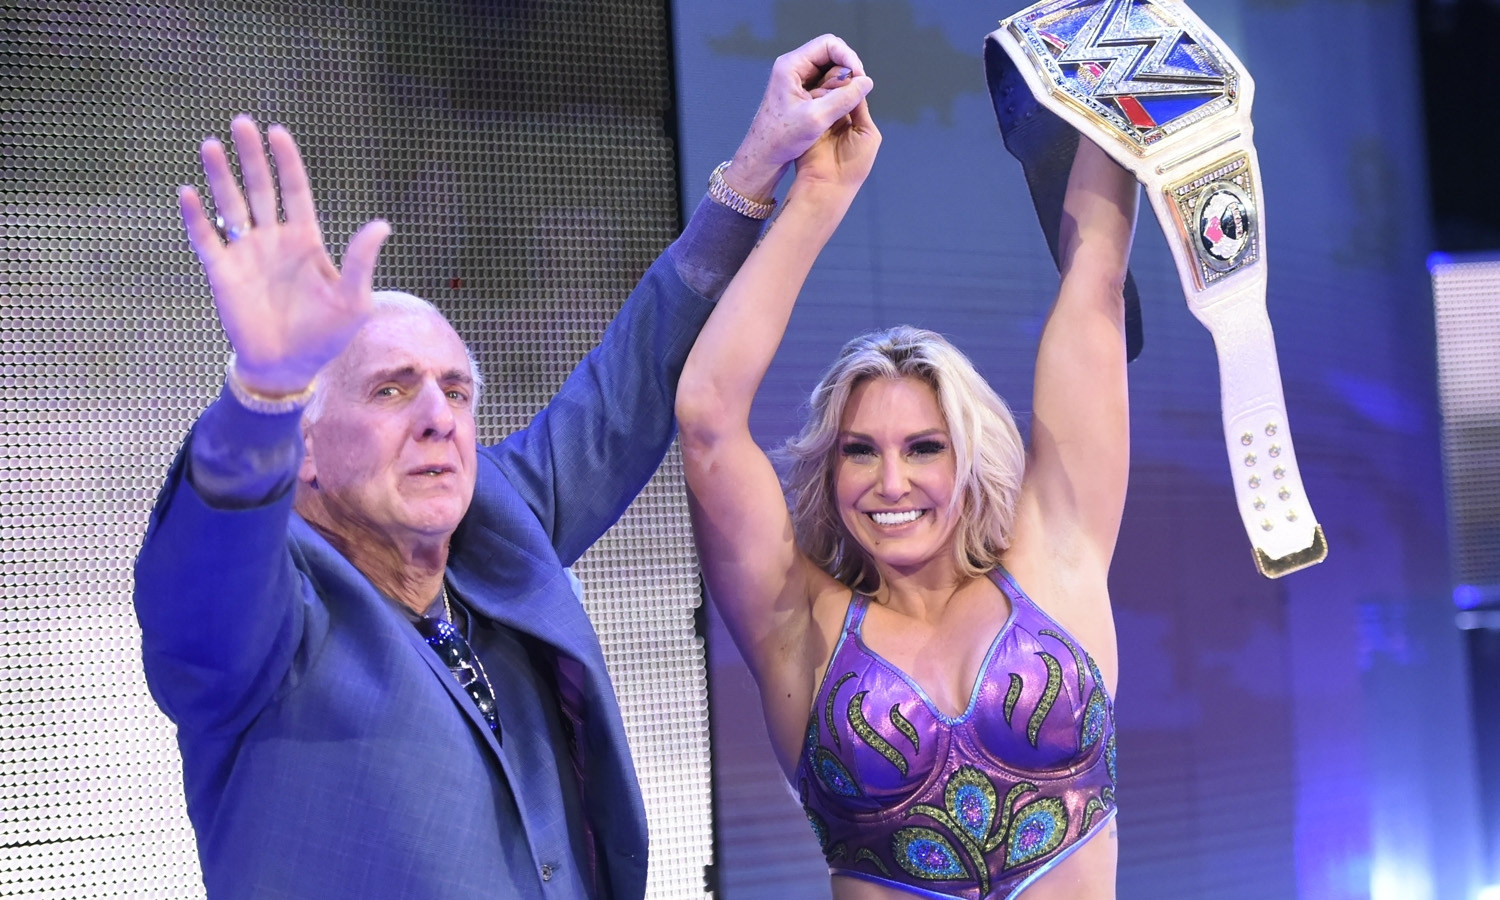 Charlotte Crowned New Women's Champion On Smackdown, Ric Flair Appears To Celebrate